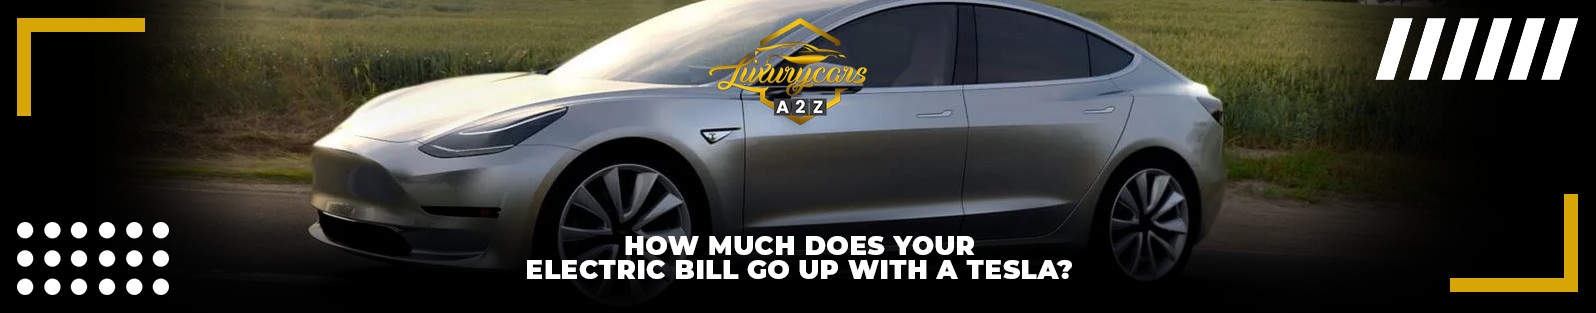 How much does your electric bill go up with a Tesla?